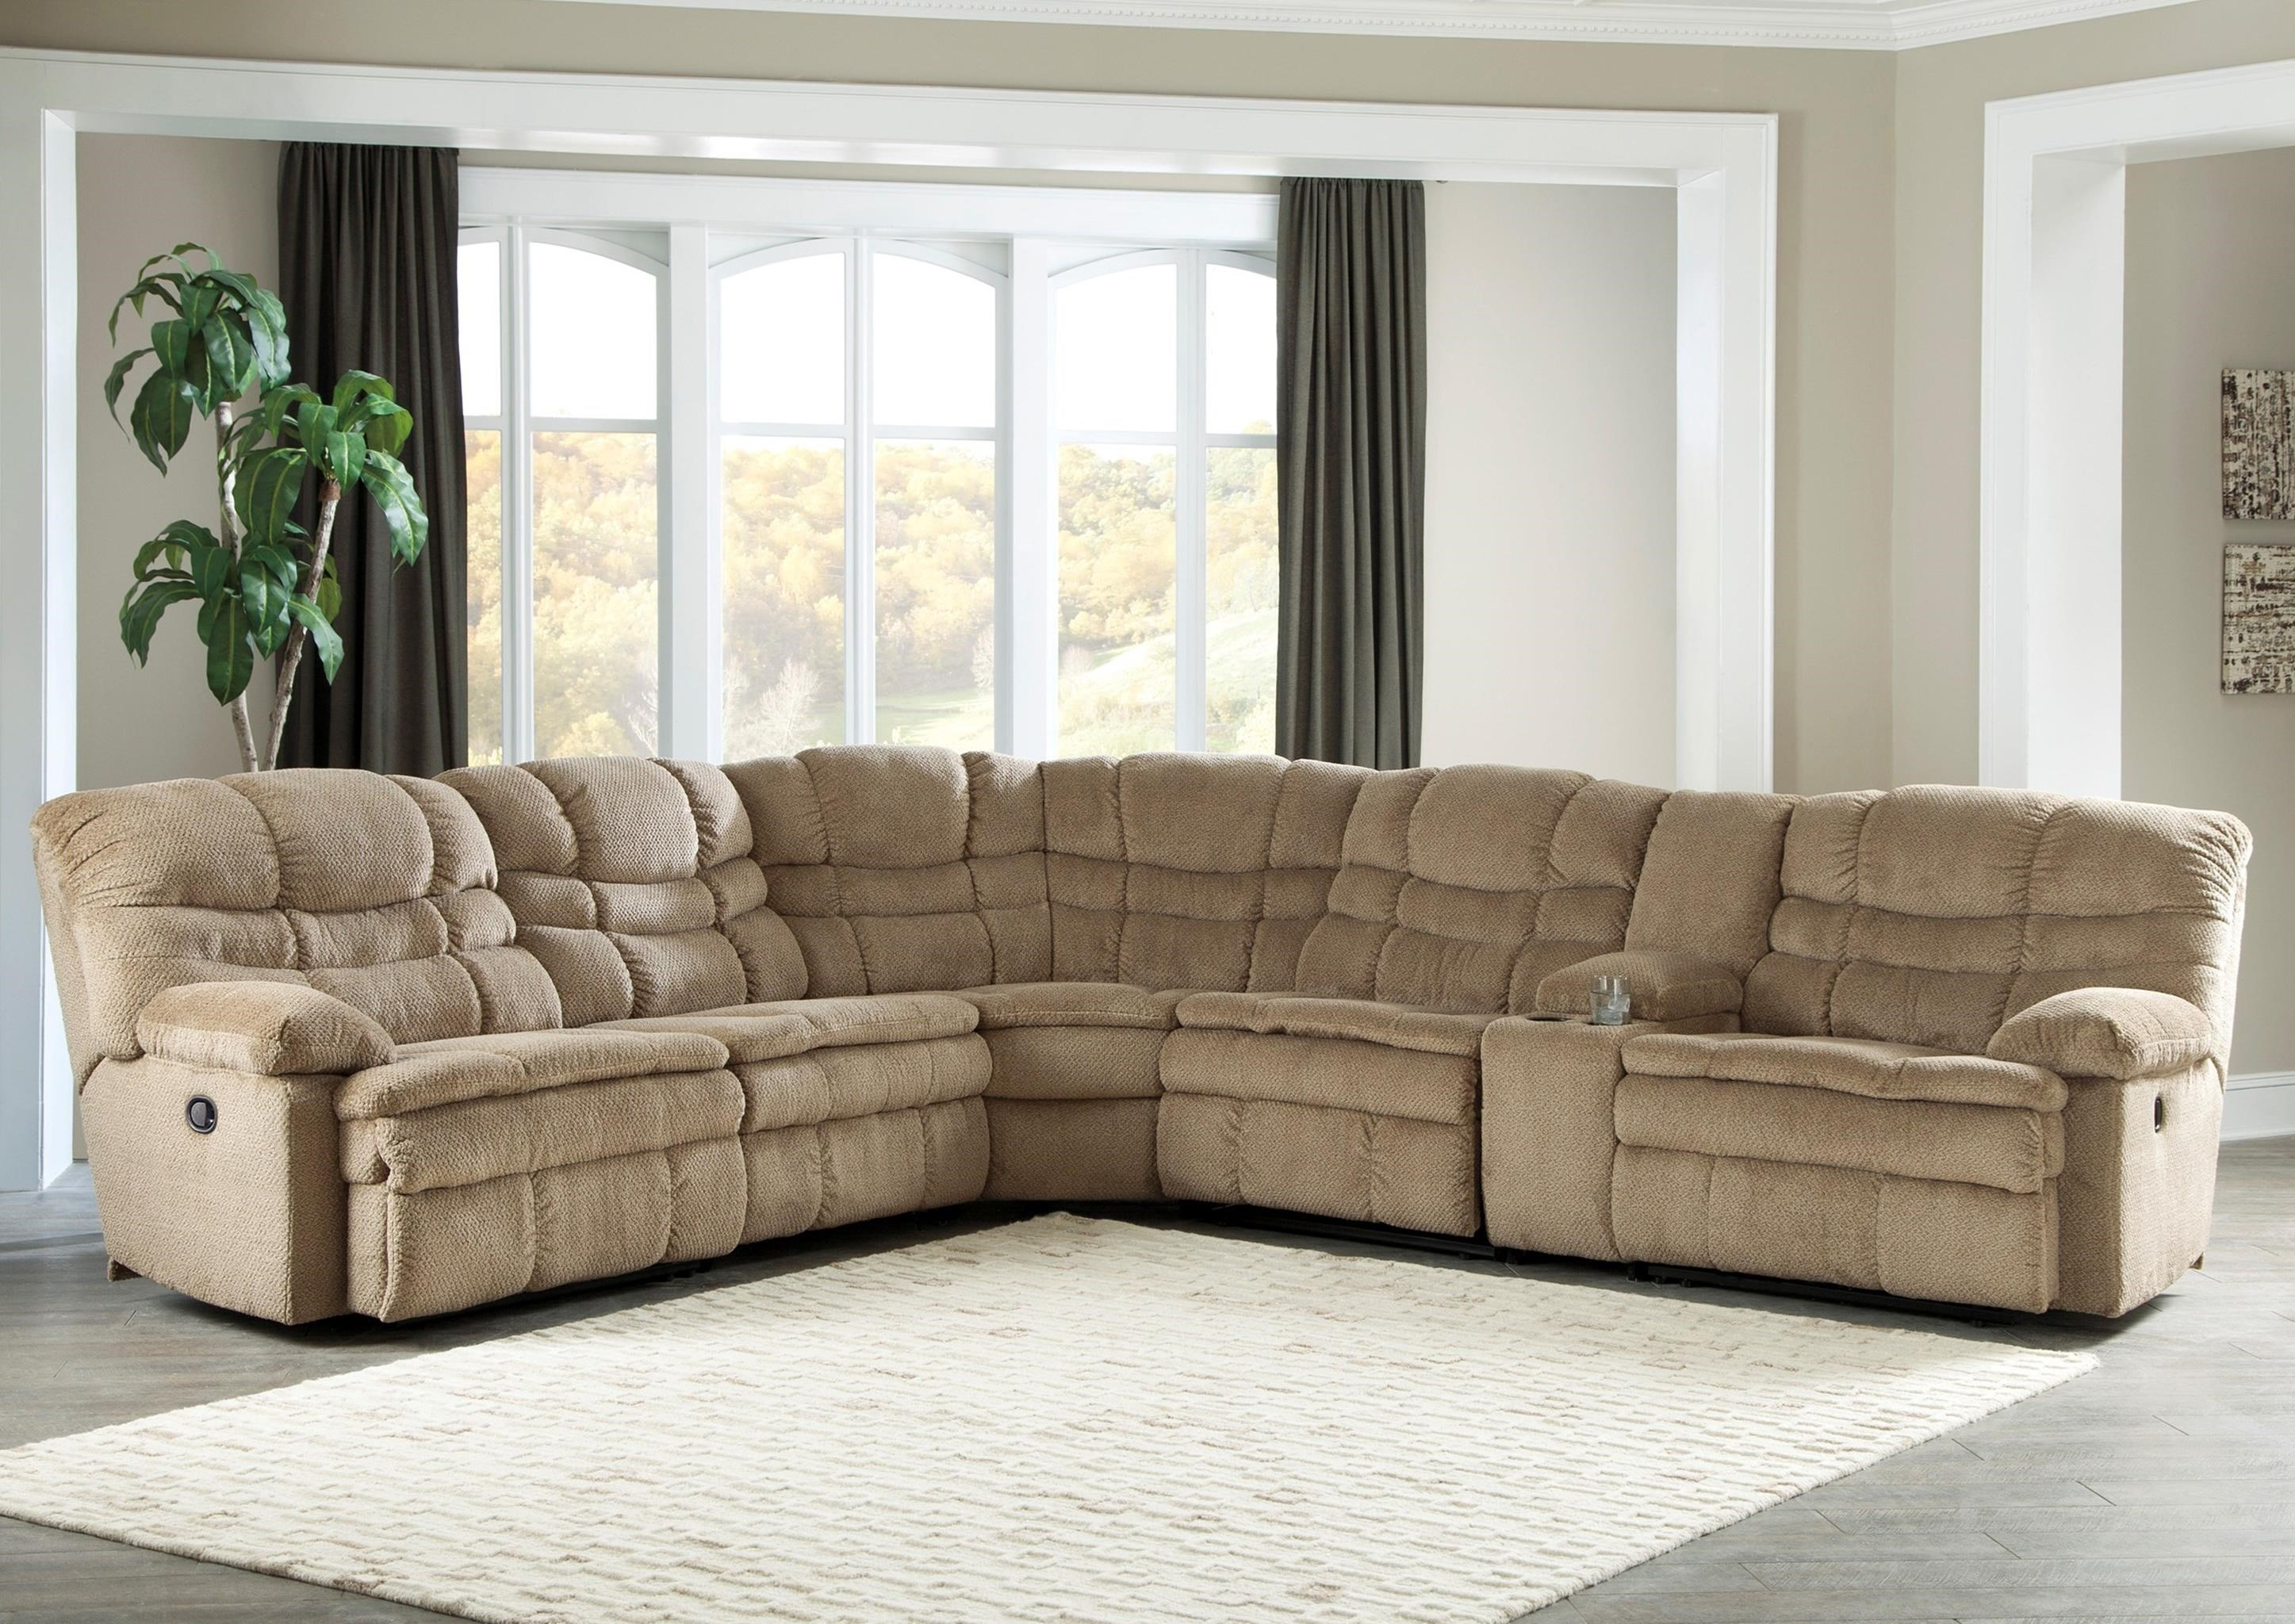 Signature Design by Ashley Zavion 6Pc Recl Sectional w/ Storage Console - Dream Home Furniture ...